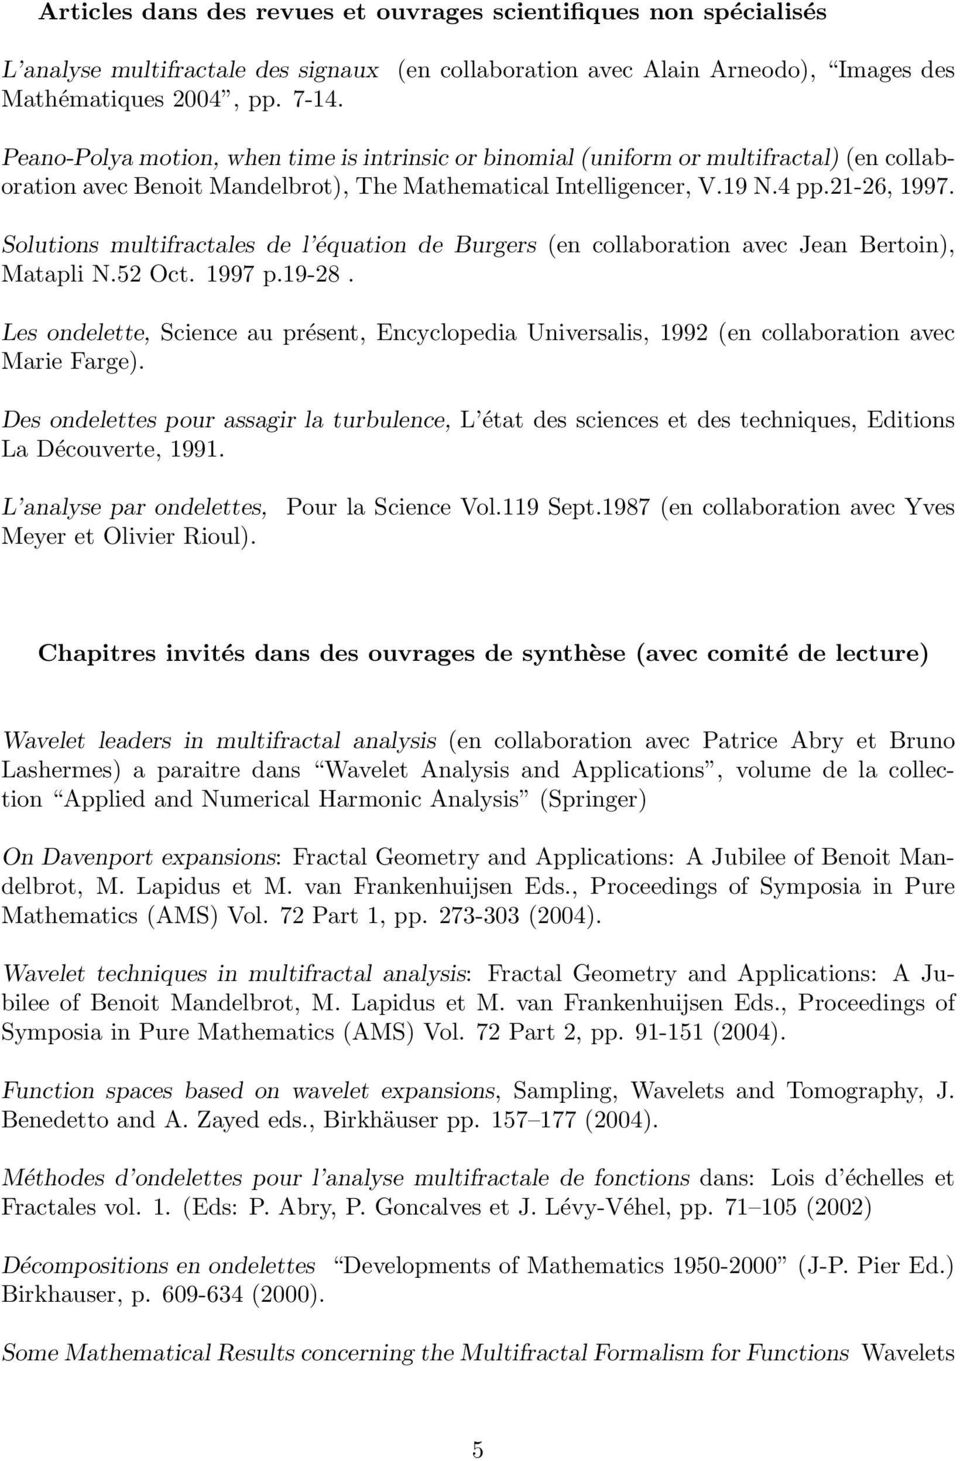 Intelligencer, V.19 N.4 pp.21-26, 1997. Solutions multifractales de l équation de Burgers (en collaboration avec Jean Bertoin), Matapli N.52 Oct. 1997 p.19-28.